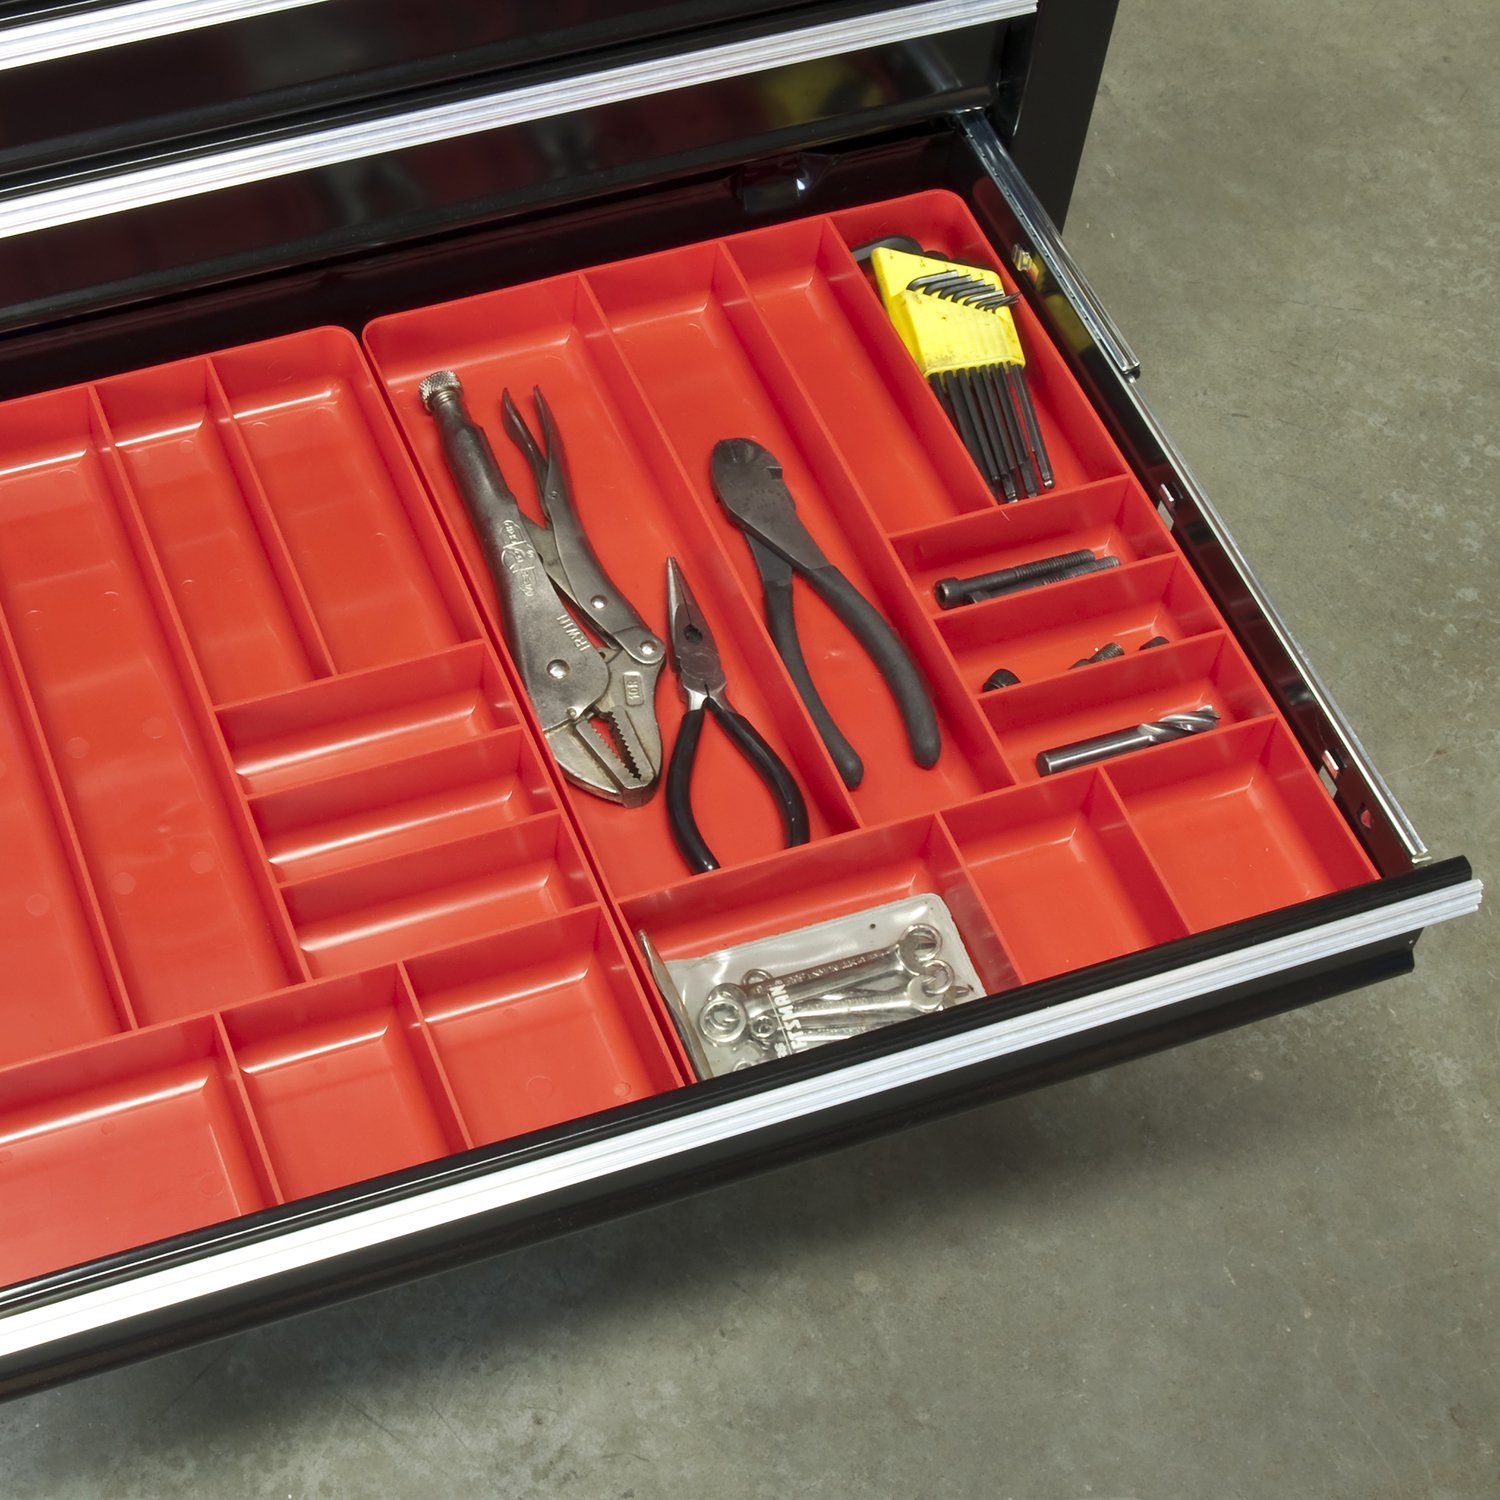 3-Compartments Ernst Manufacturing Organizer Tray Red